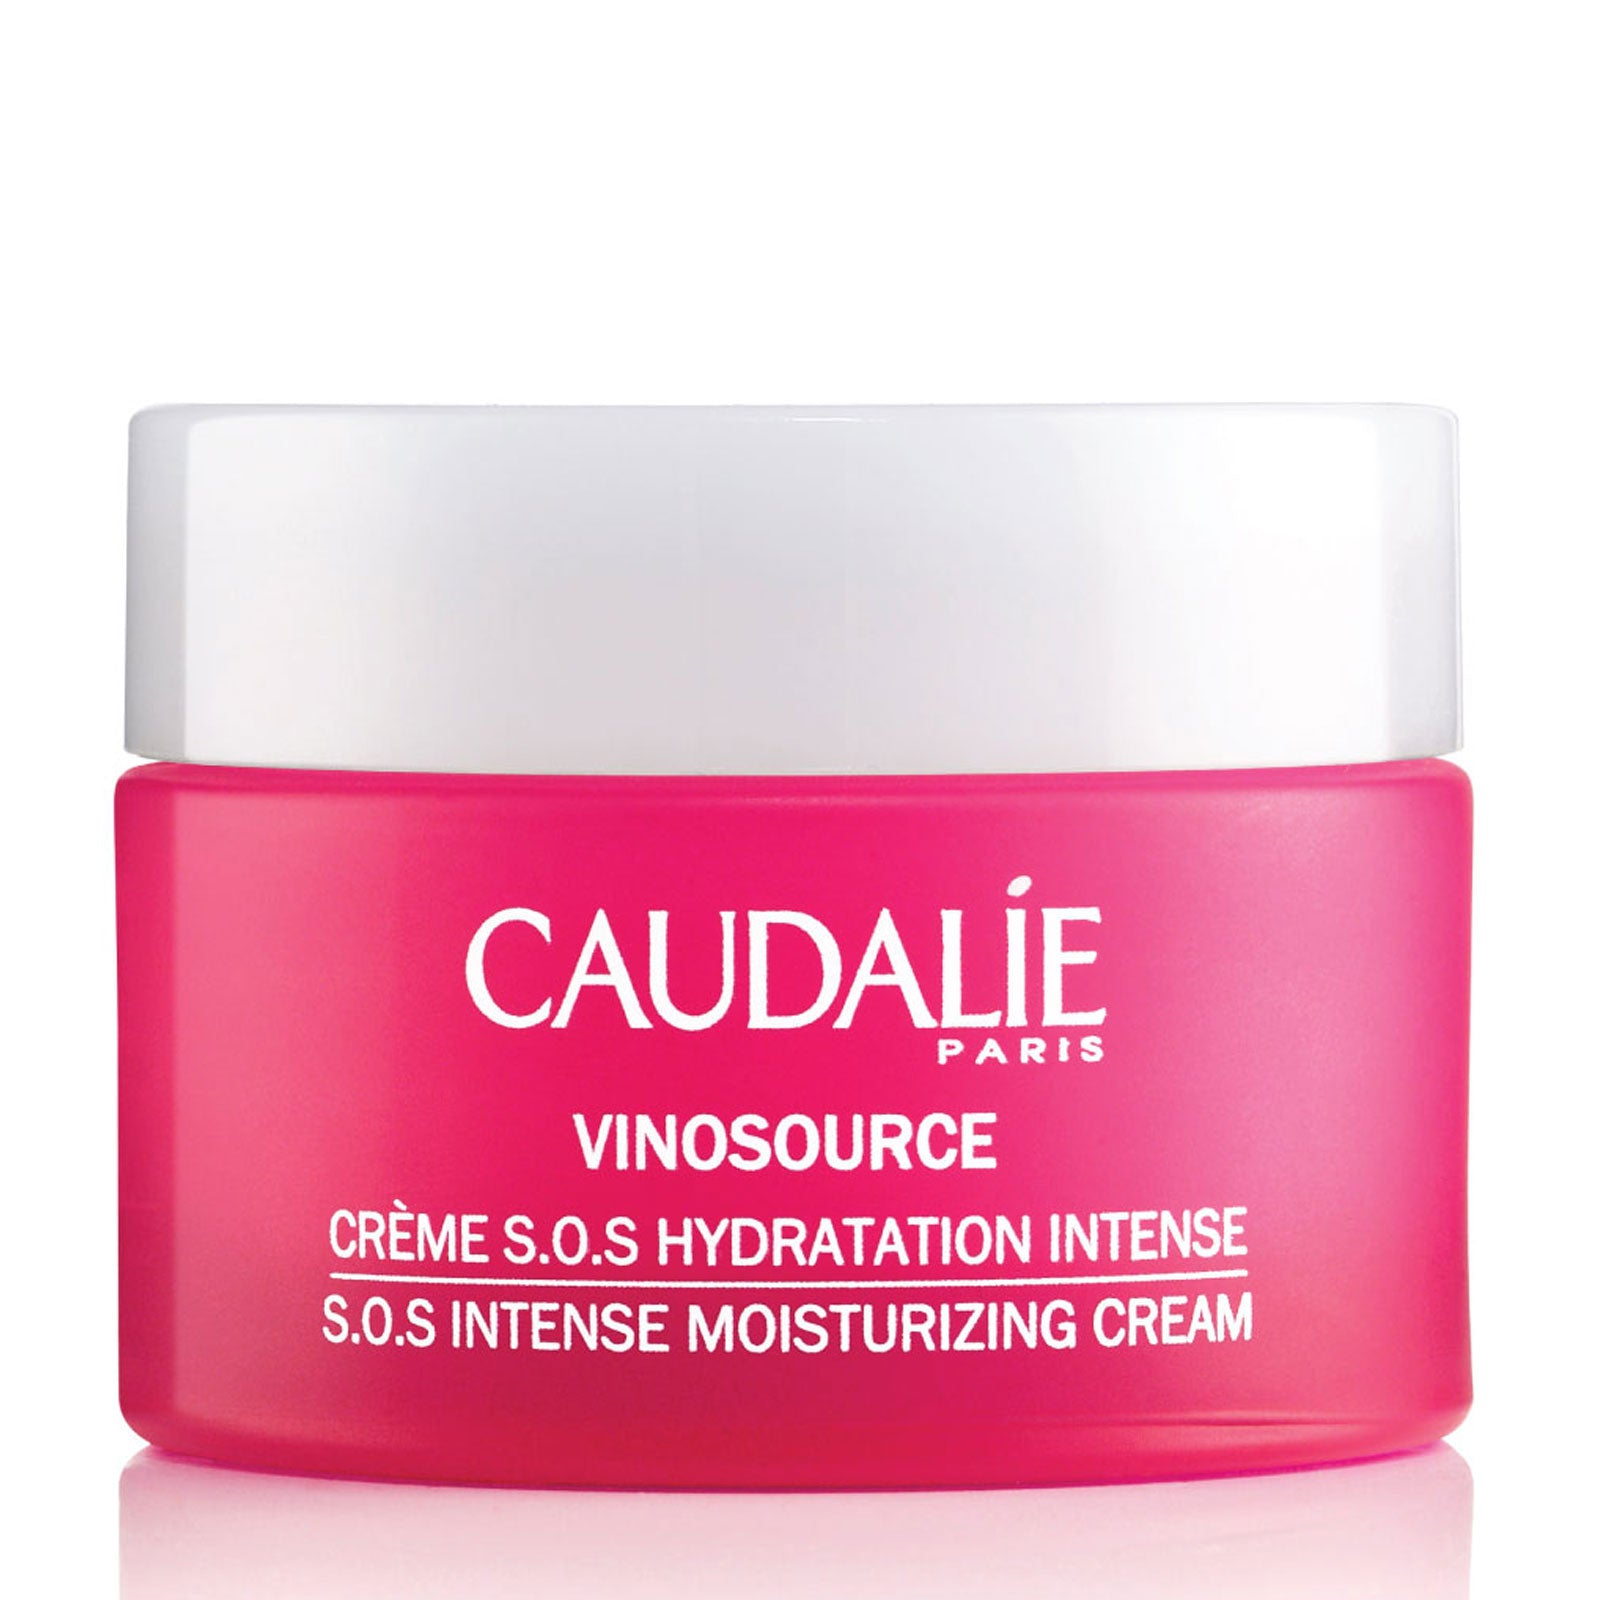 Caudalie Vinosource SOS Intense Moisturizing Cream 25ml